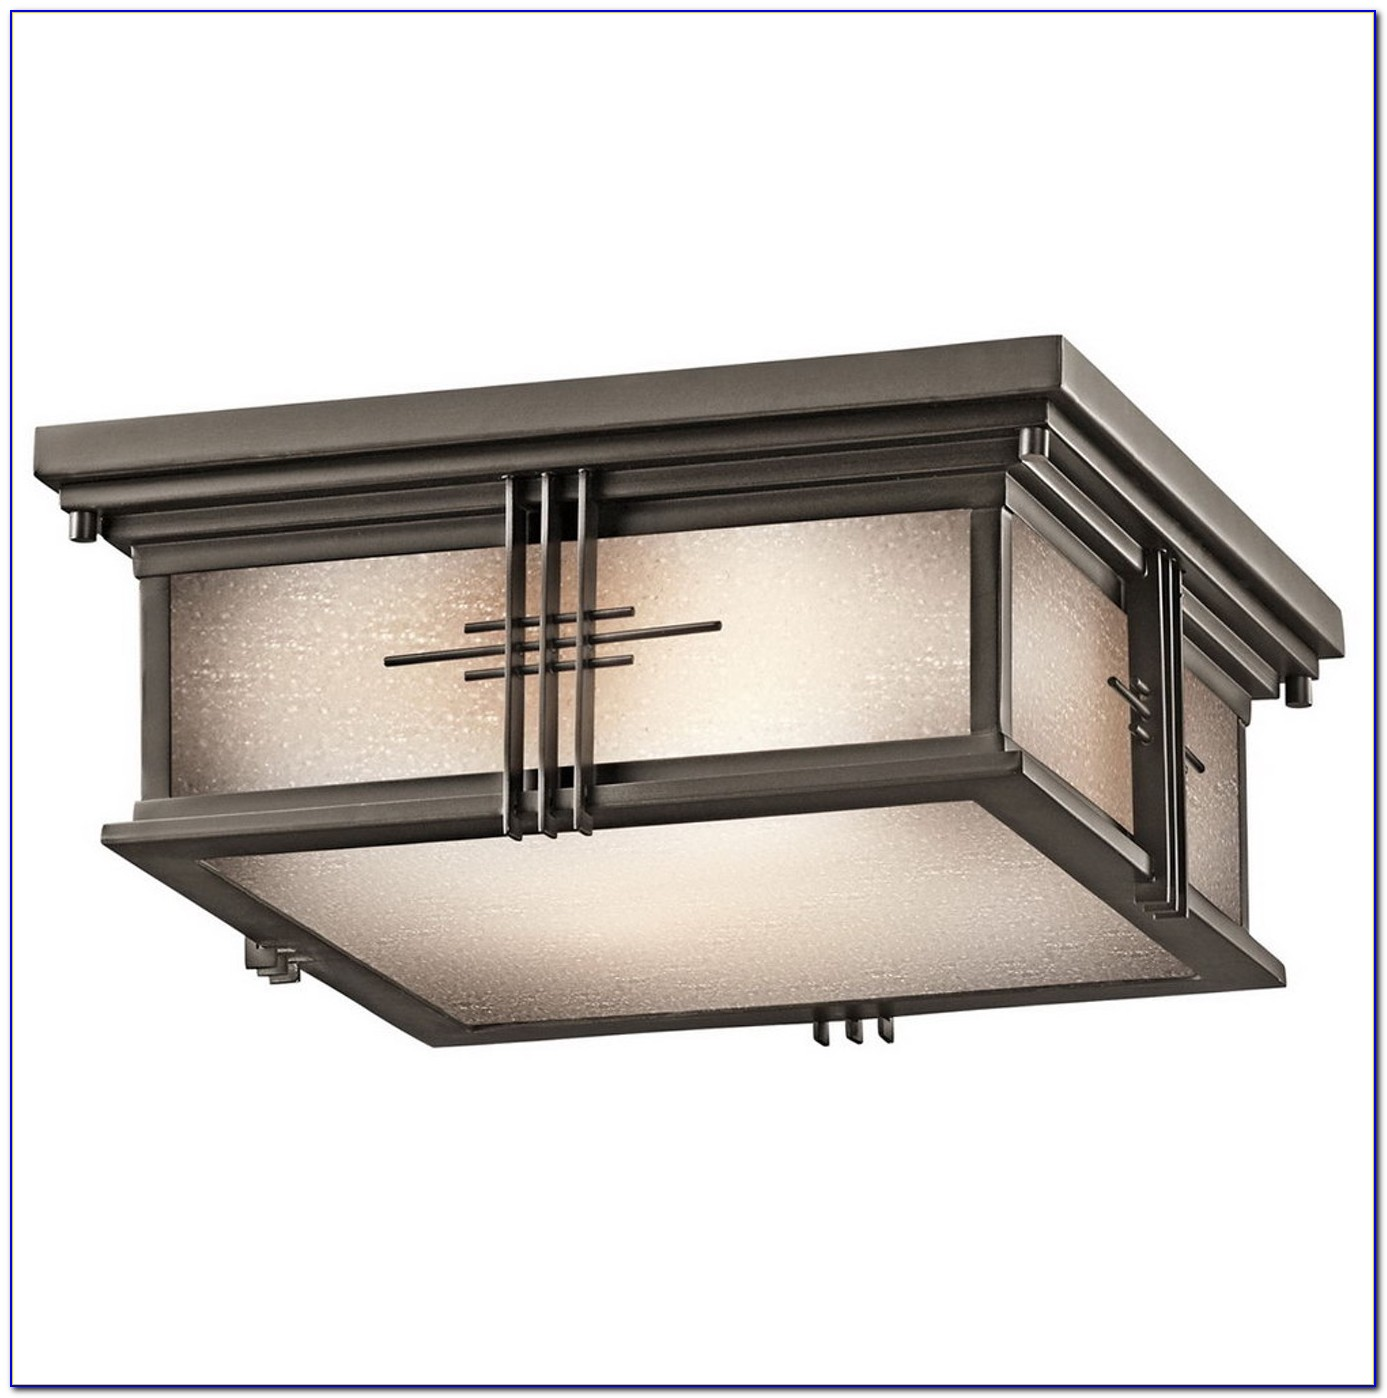 Ceiling Mounted Kitchen Exhaust Fan